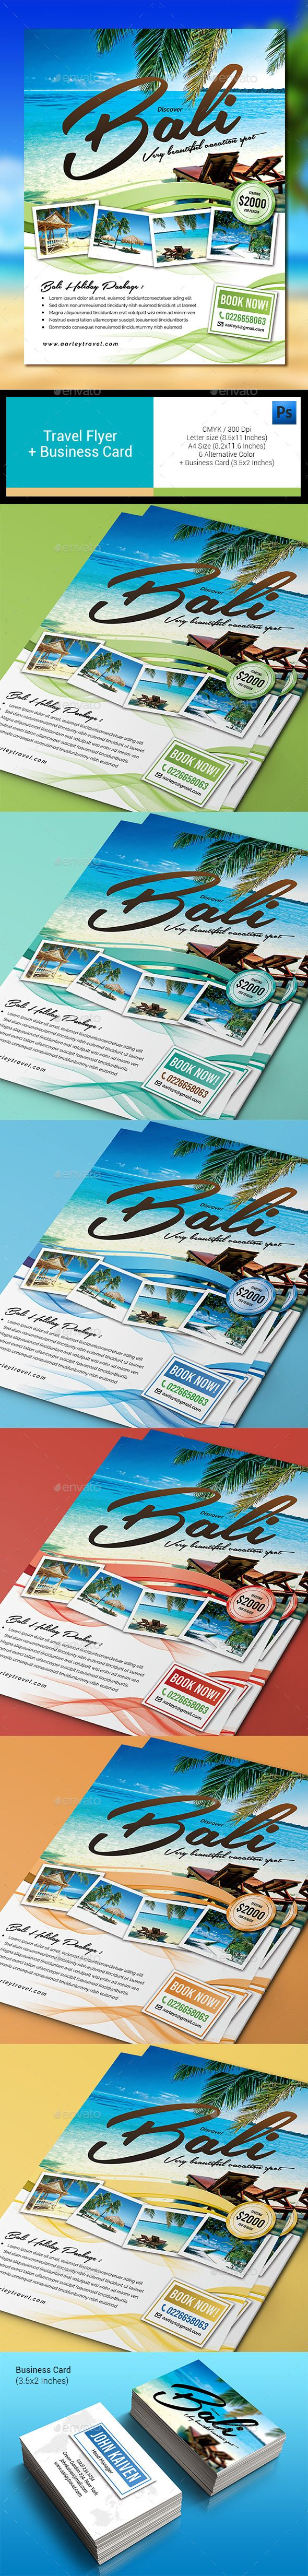 Travel Flyer + Business Card Template PSD #design Download: http://graphicriver.net/item/travel-flyer-business-card/12999345?ref=ksioks